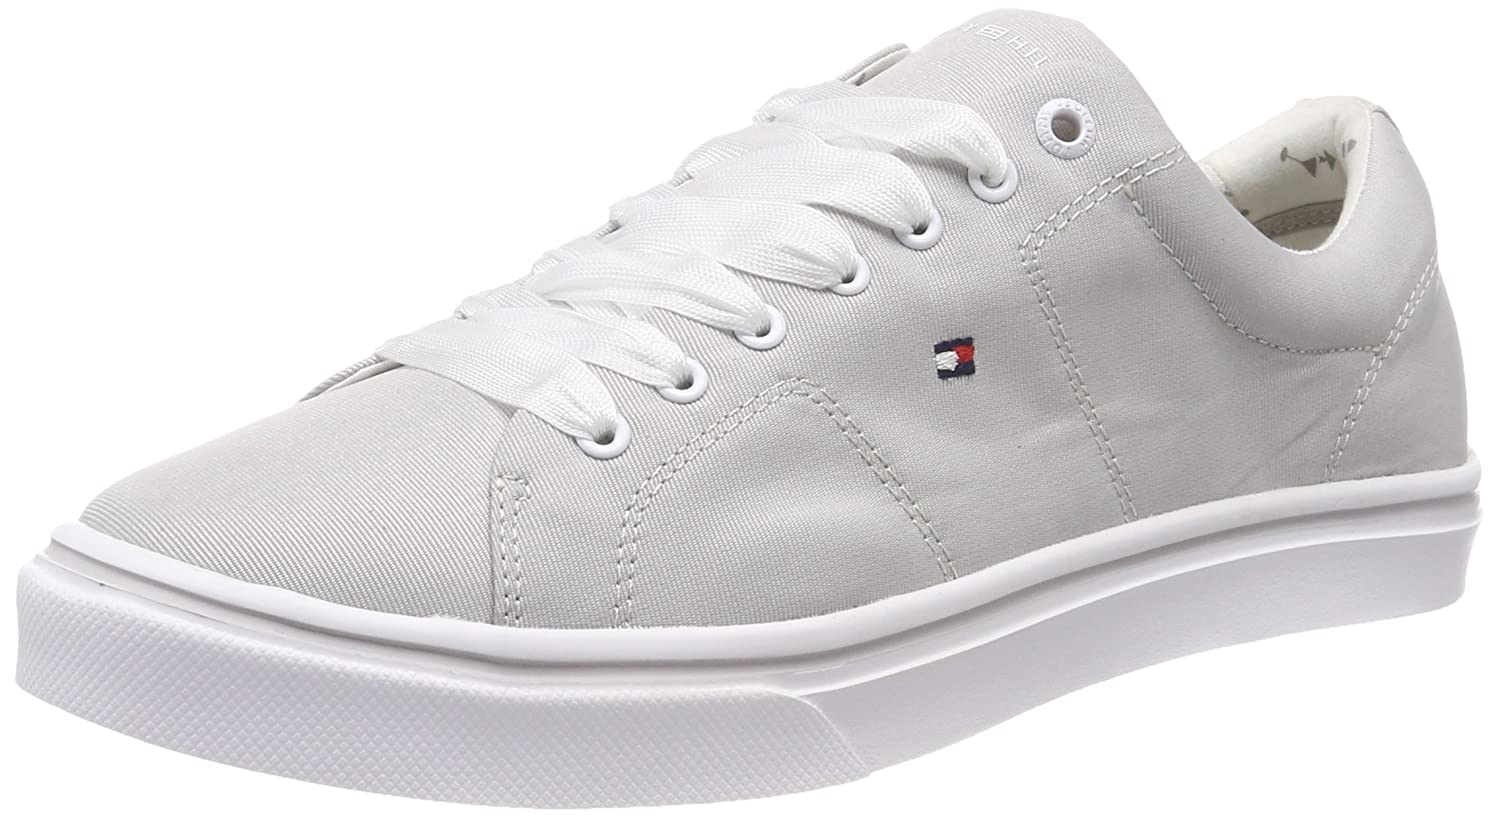 TALLA 40 EU. Tommy Hilfiger Metallic Light Weight Lace Up, Zapatillas para Mujer